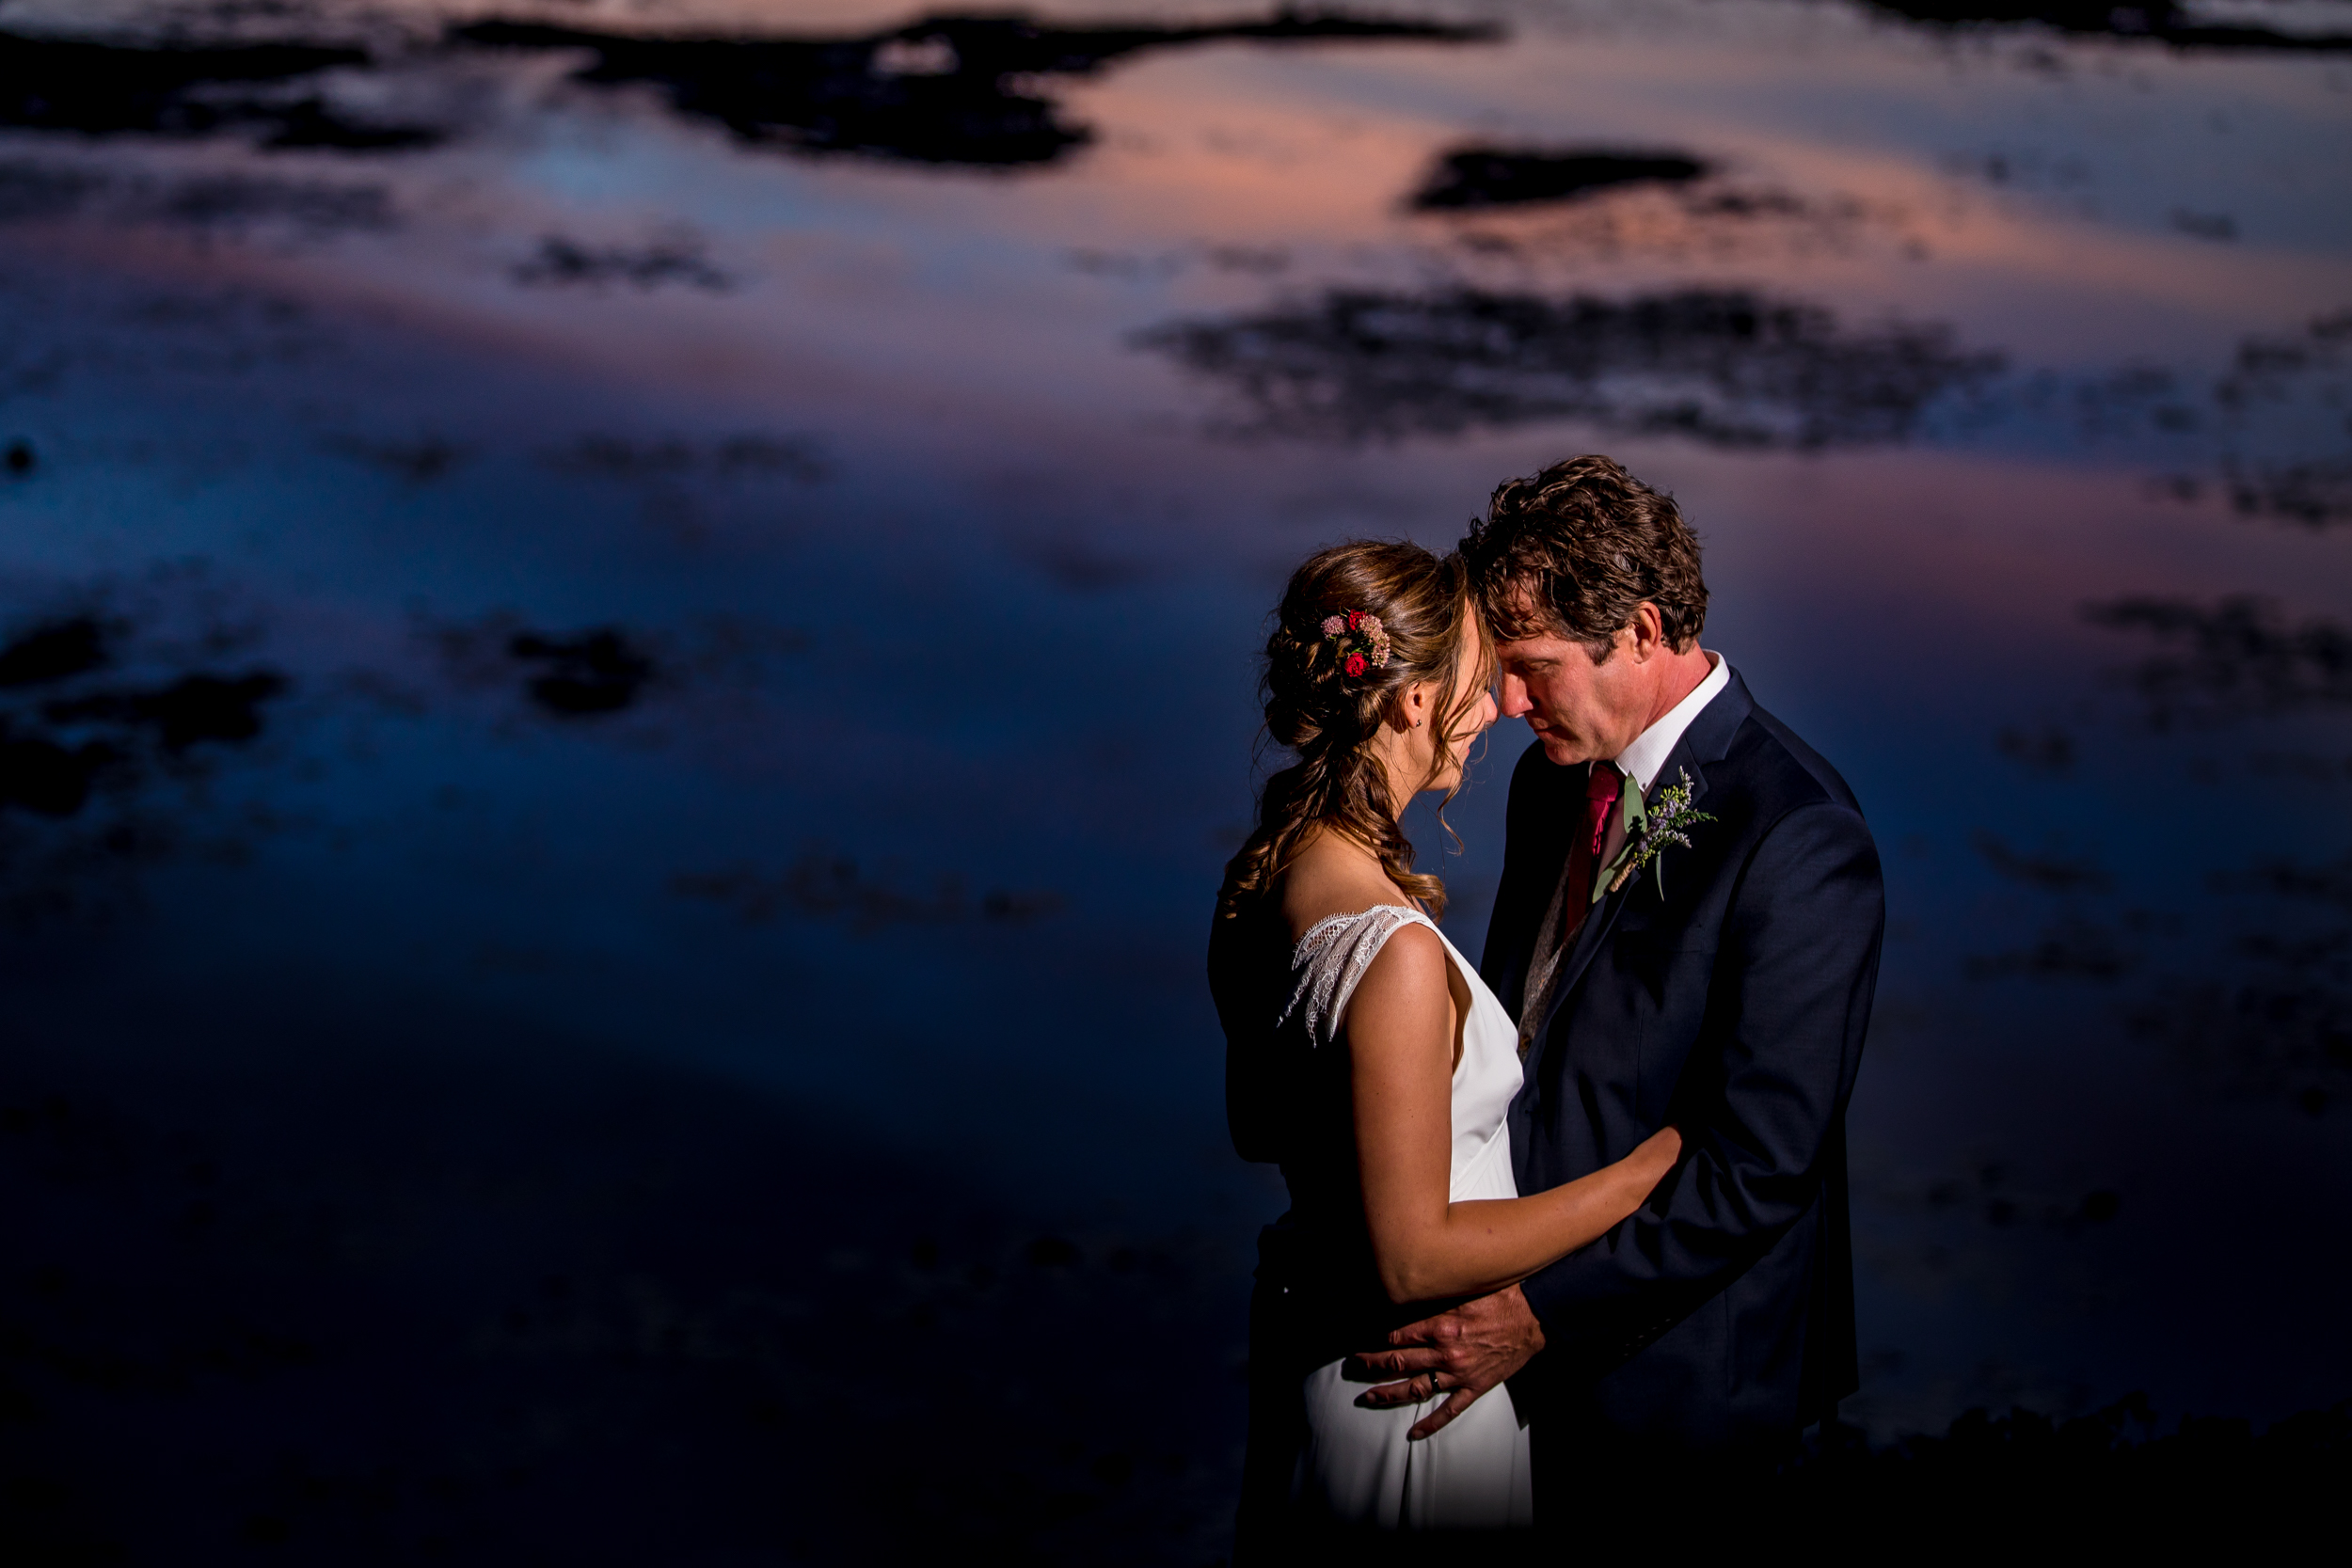 maine wedding photography_bride and groom portraits_vinatage car-71.jpg